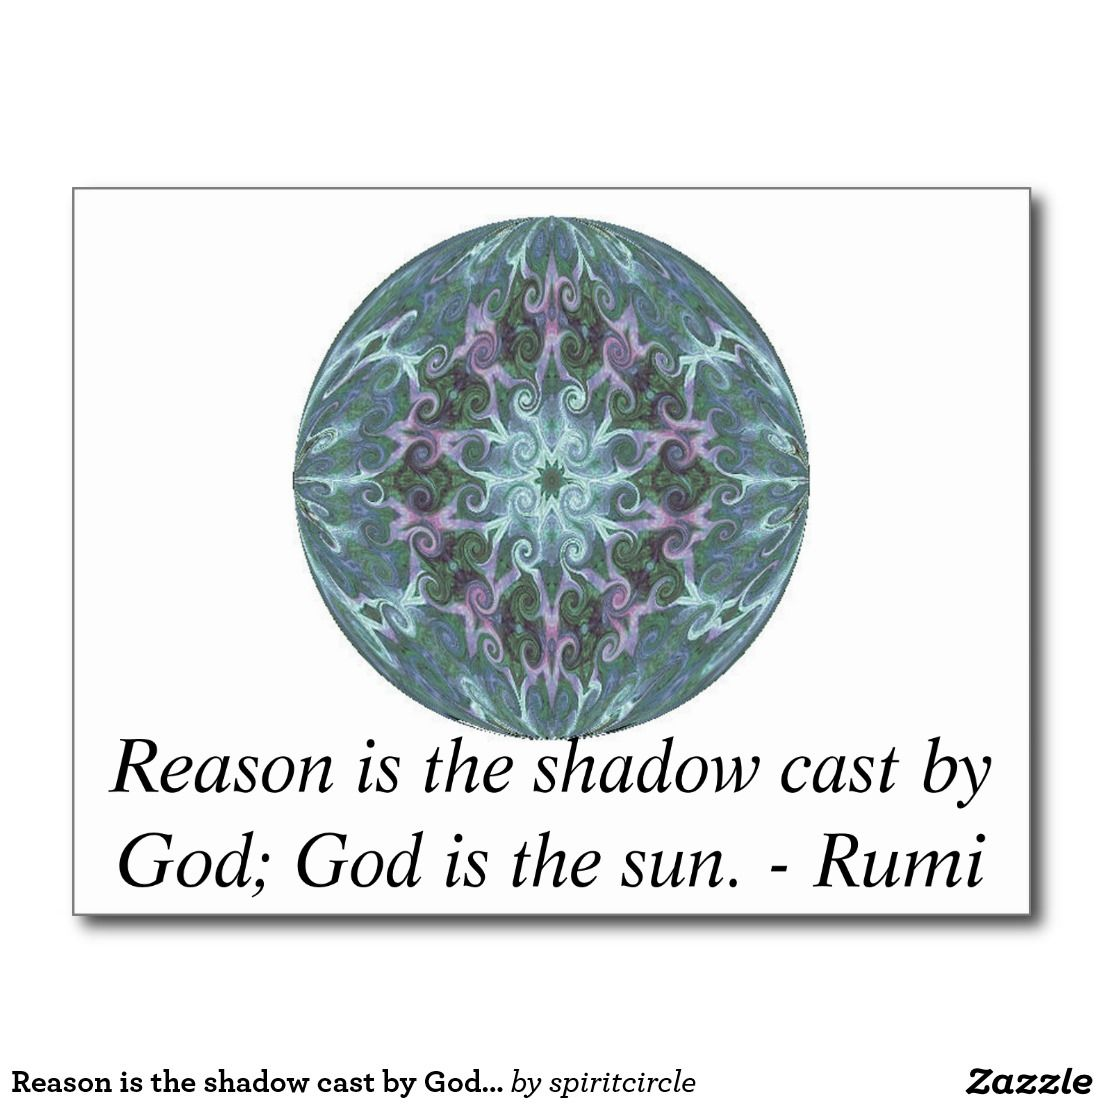 Reason is the shadow cast by God; God is the sun. Postcard